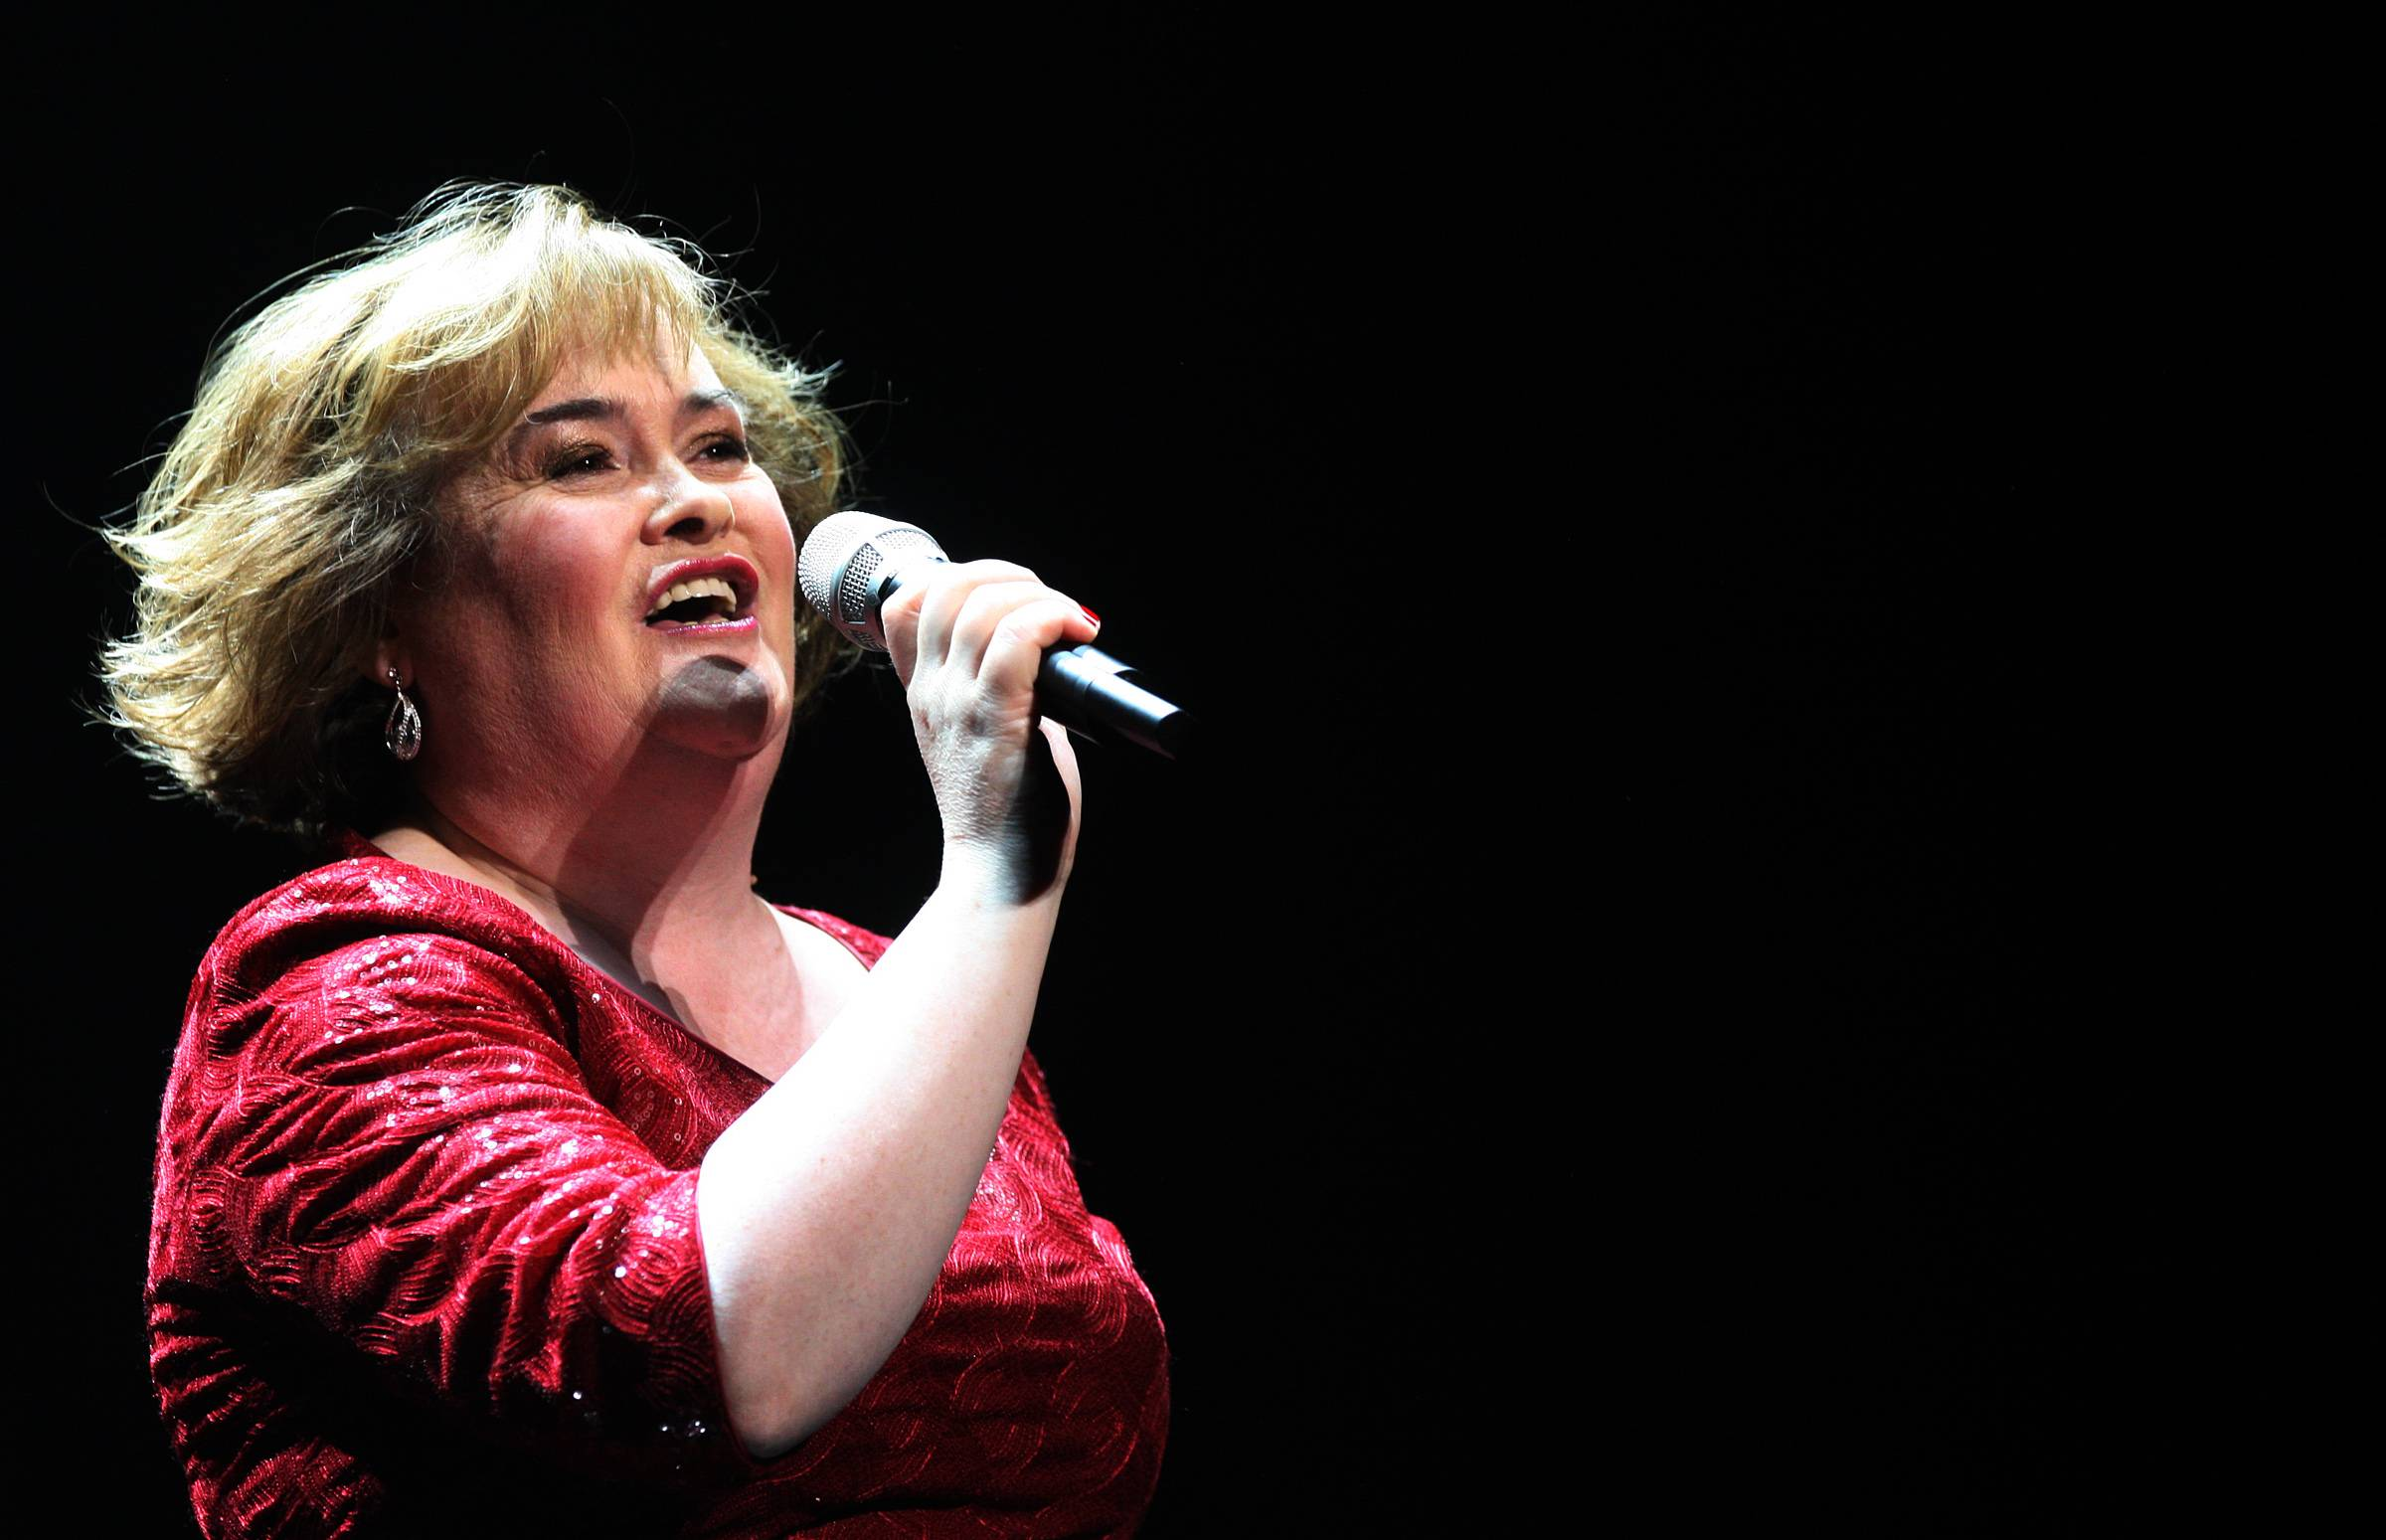 Five years after her musical breakthrough, Susan Boyle says she's feeling confident and comfortable -- and ready to launch her first U.S. tour. The 53-year-old will hit the road in October on a 21-date trek.